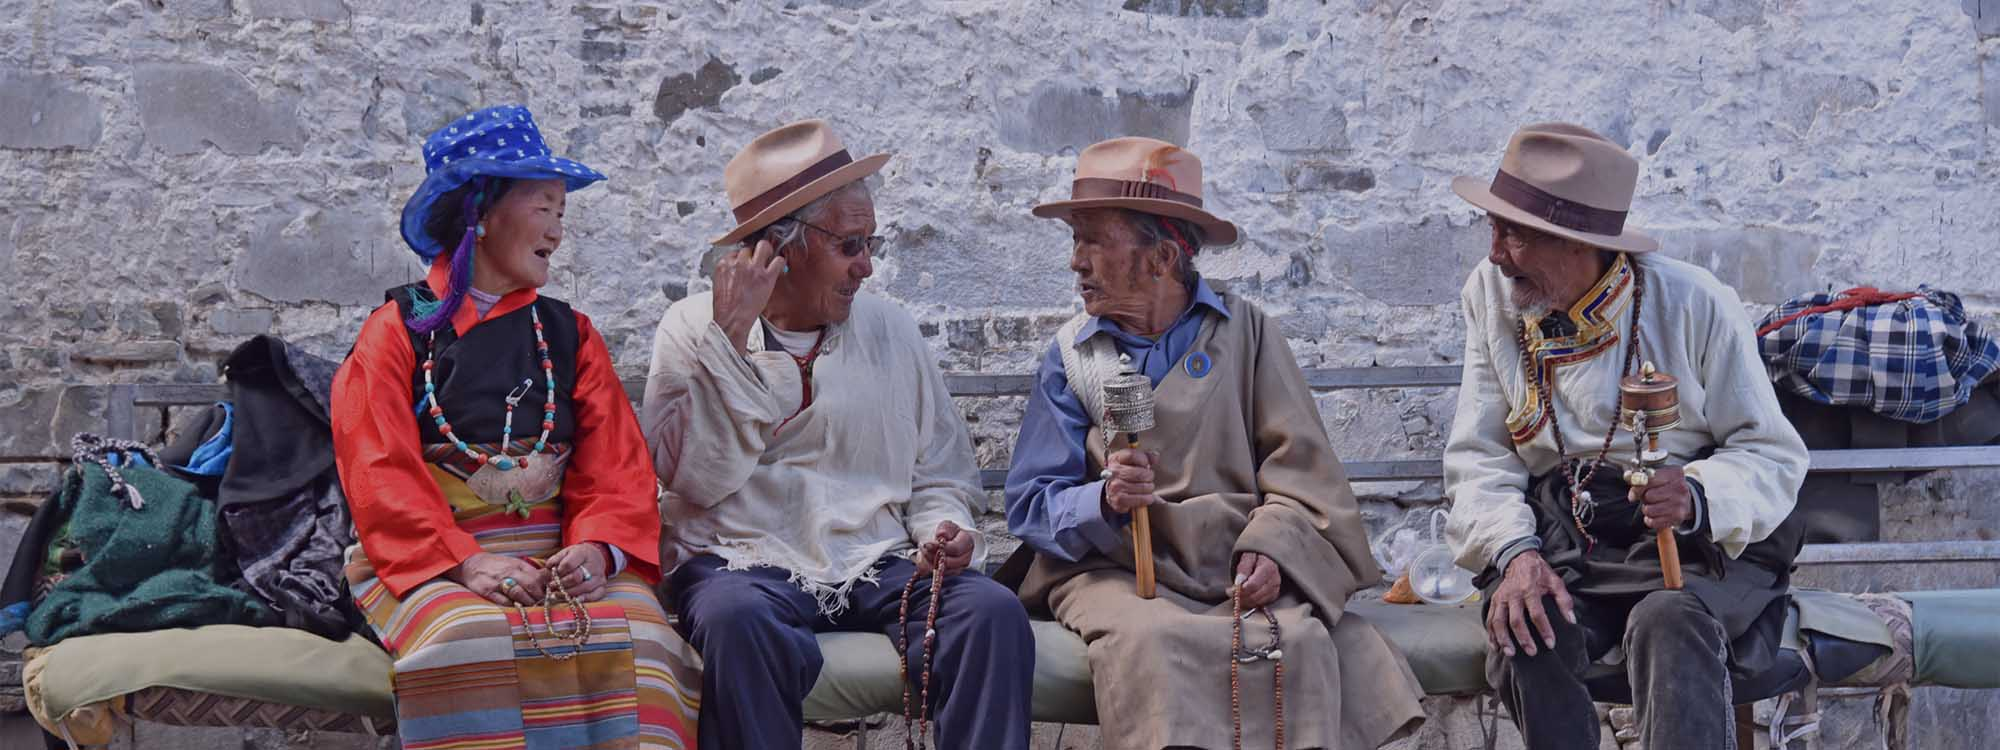 @lamamanitours's cover photo for 'Tibetan Culture Archives | Lama Mani Tours & Travel'